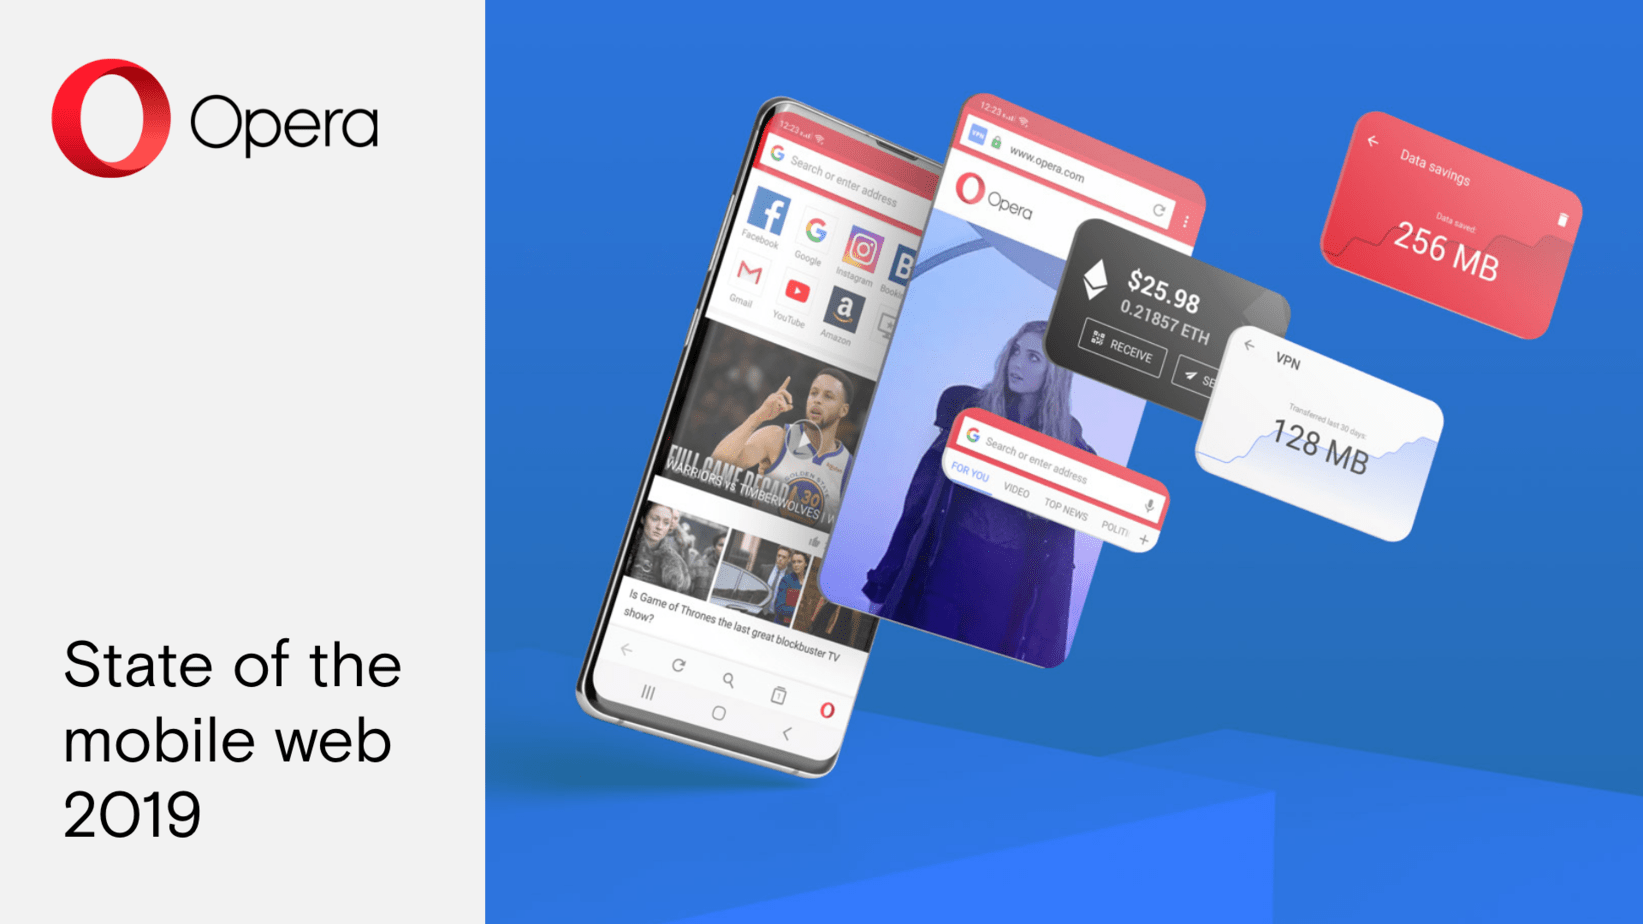 Opera mini launches 2019 State of Mobile Web Report for Africa